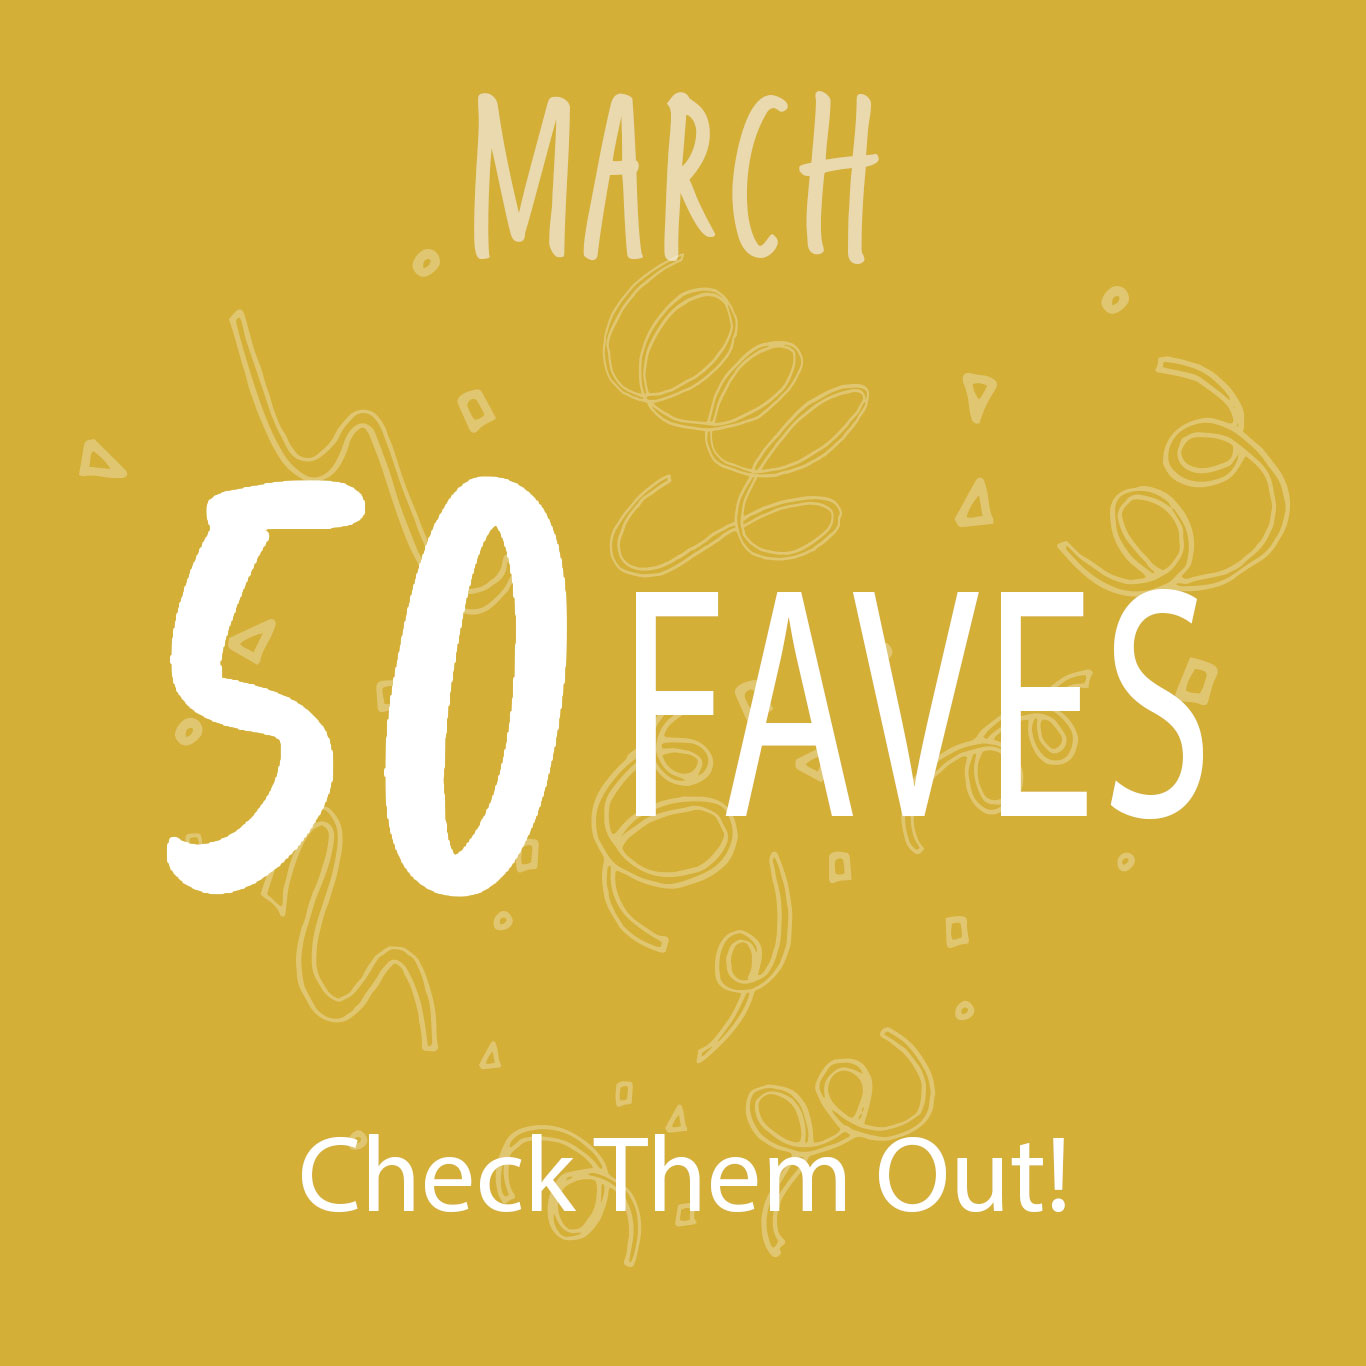 March - 50 FAVES, Check Them Out!